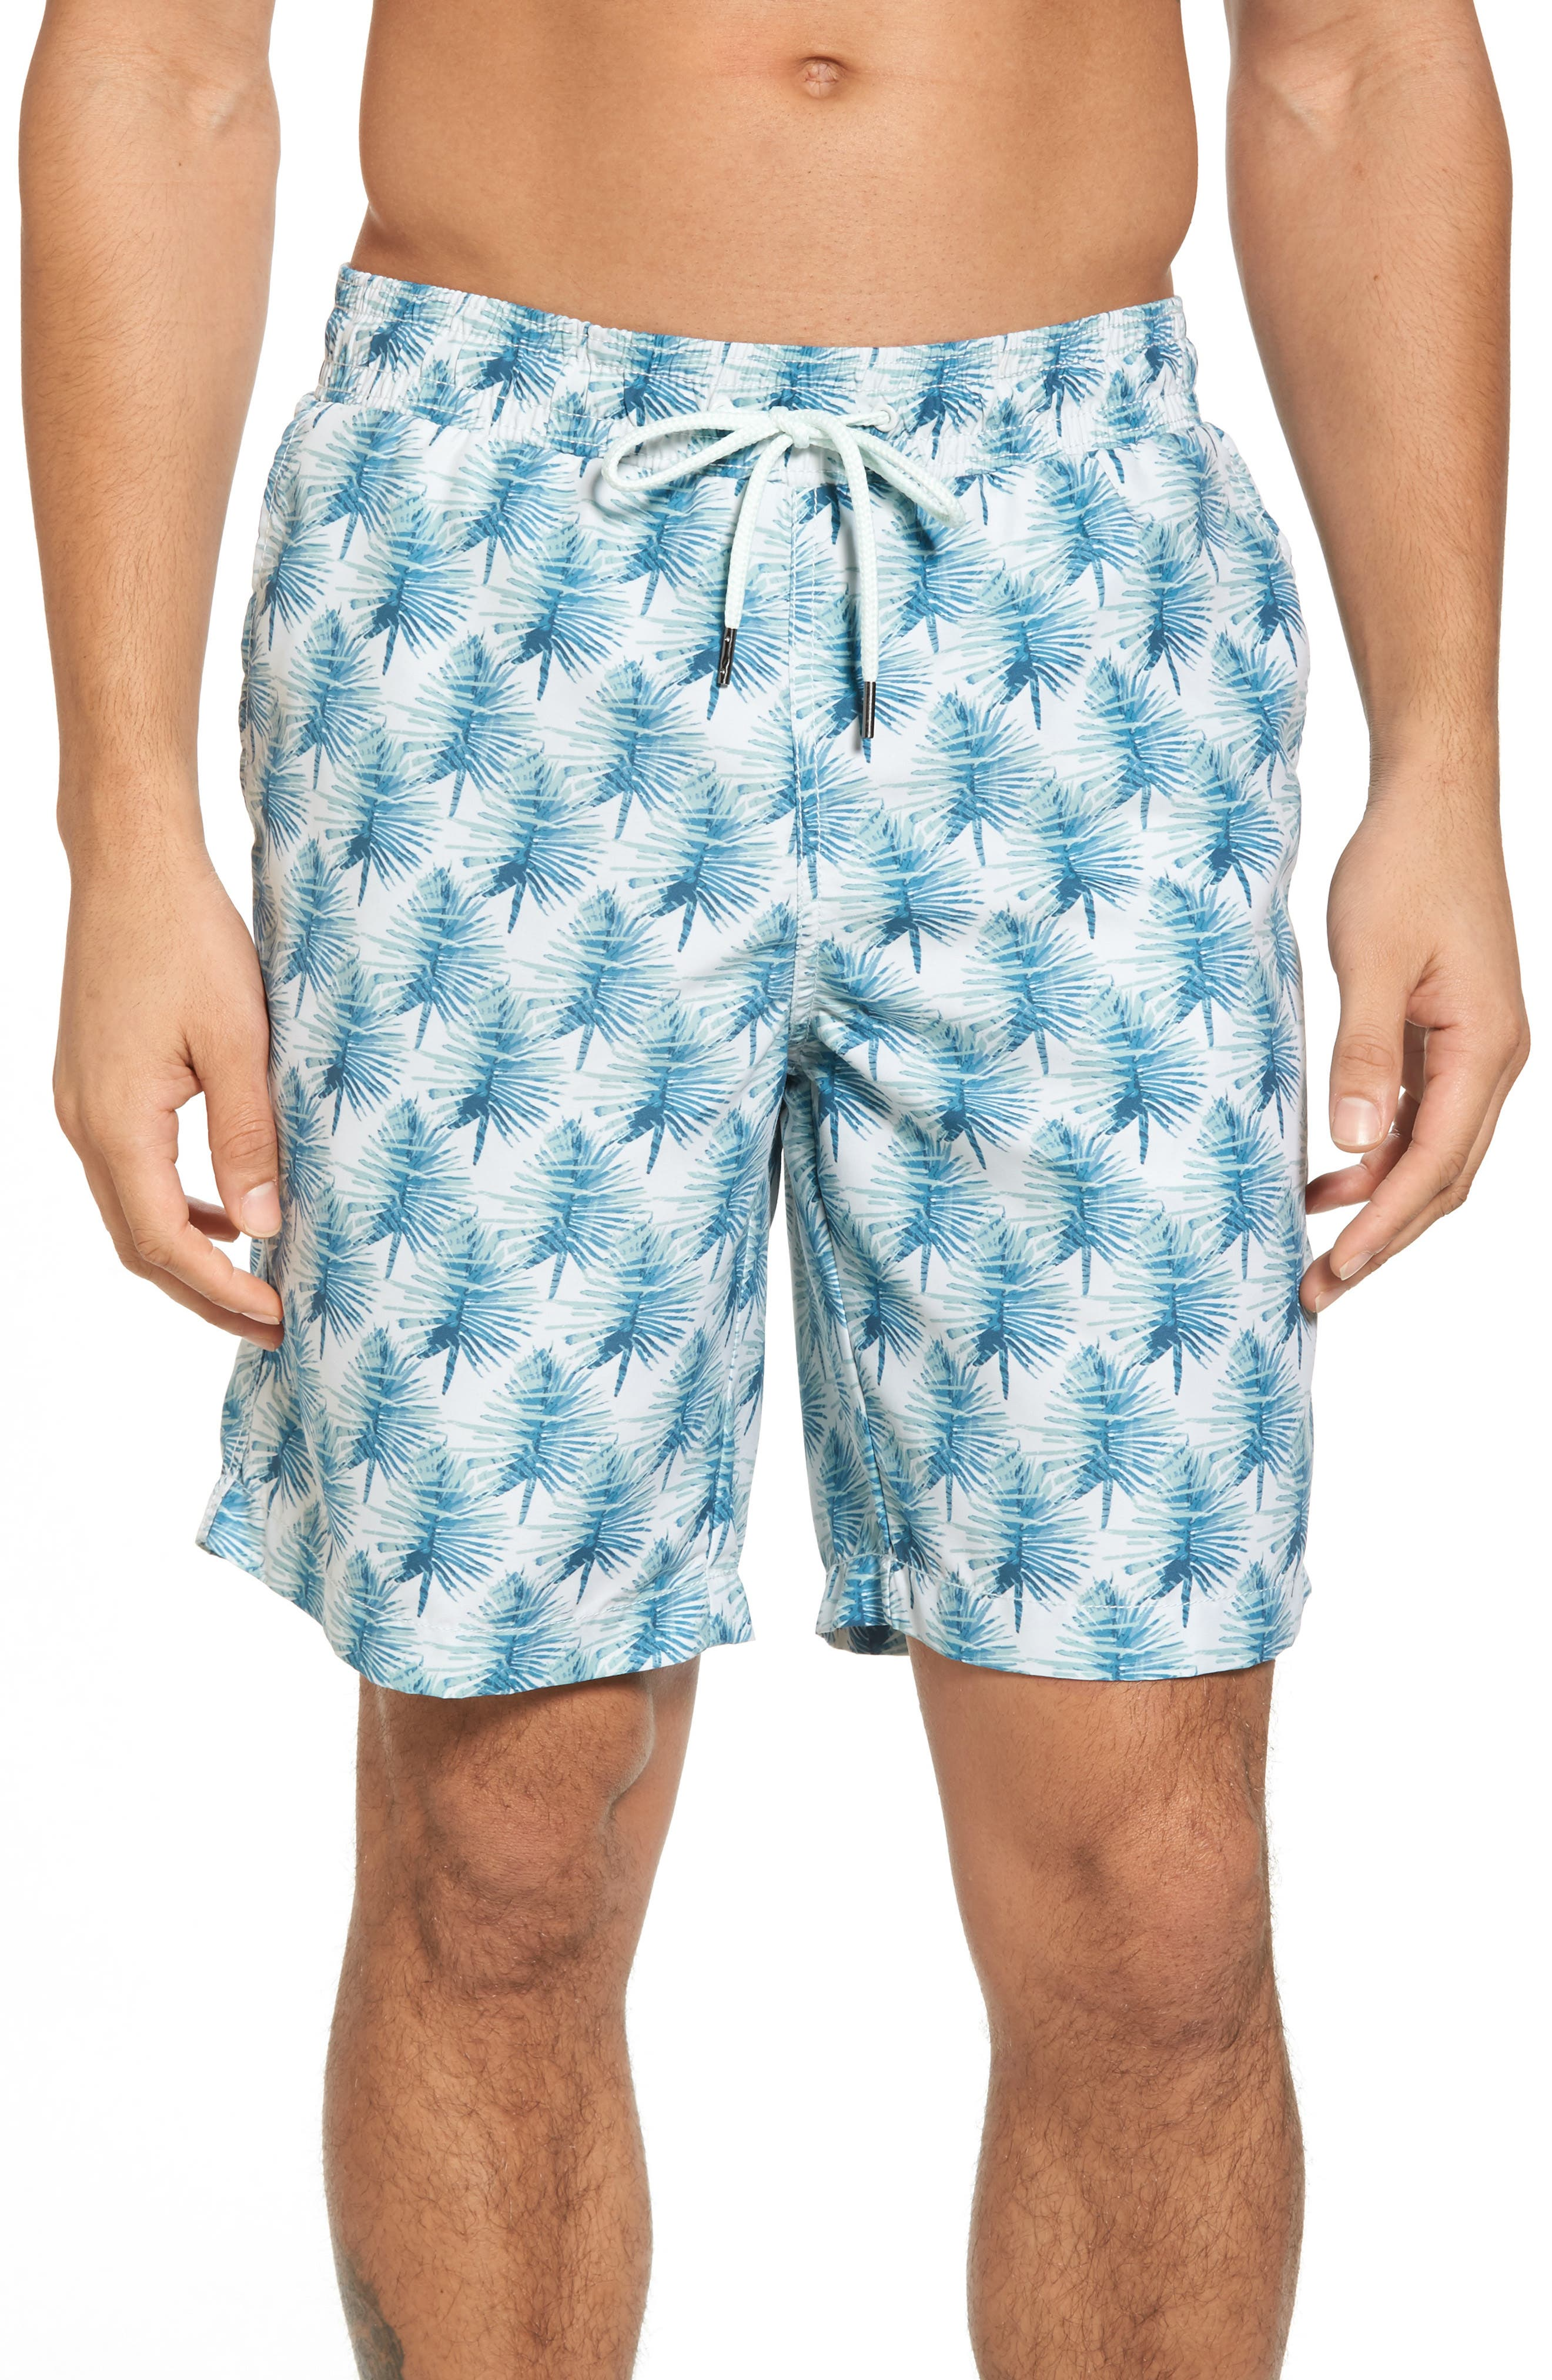 Grayers Hand Palm Swim Trunks